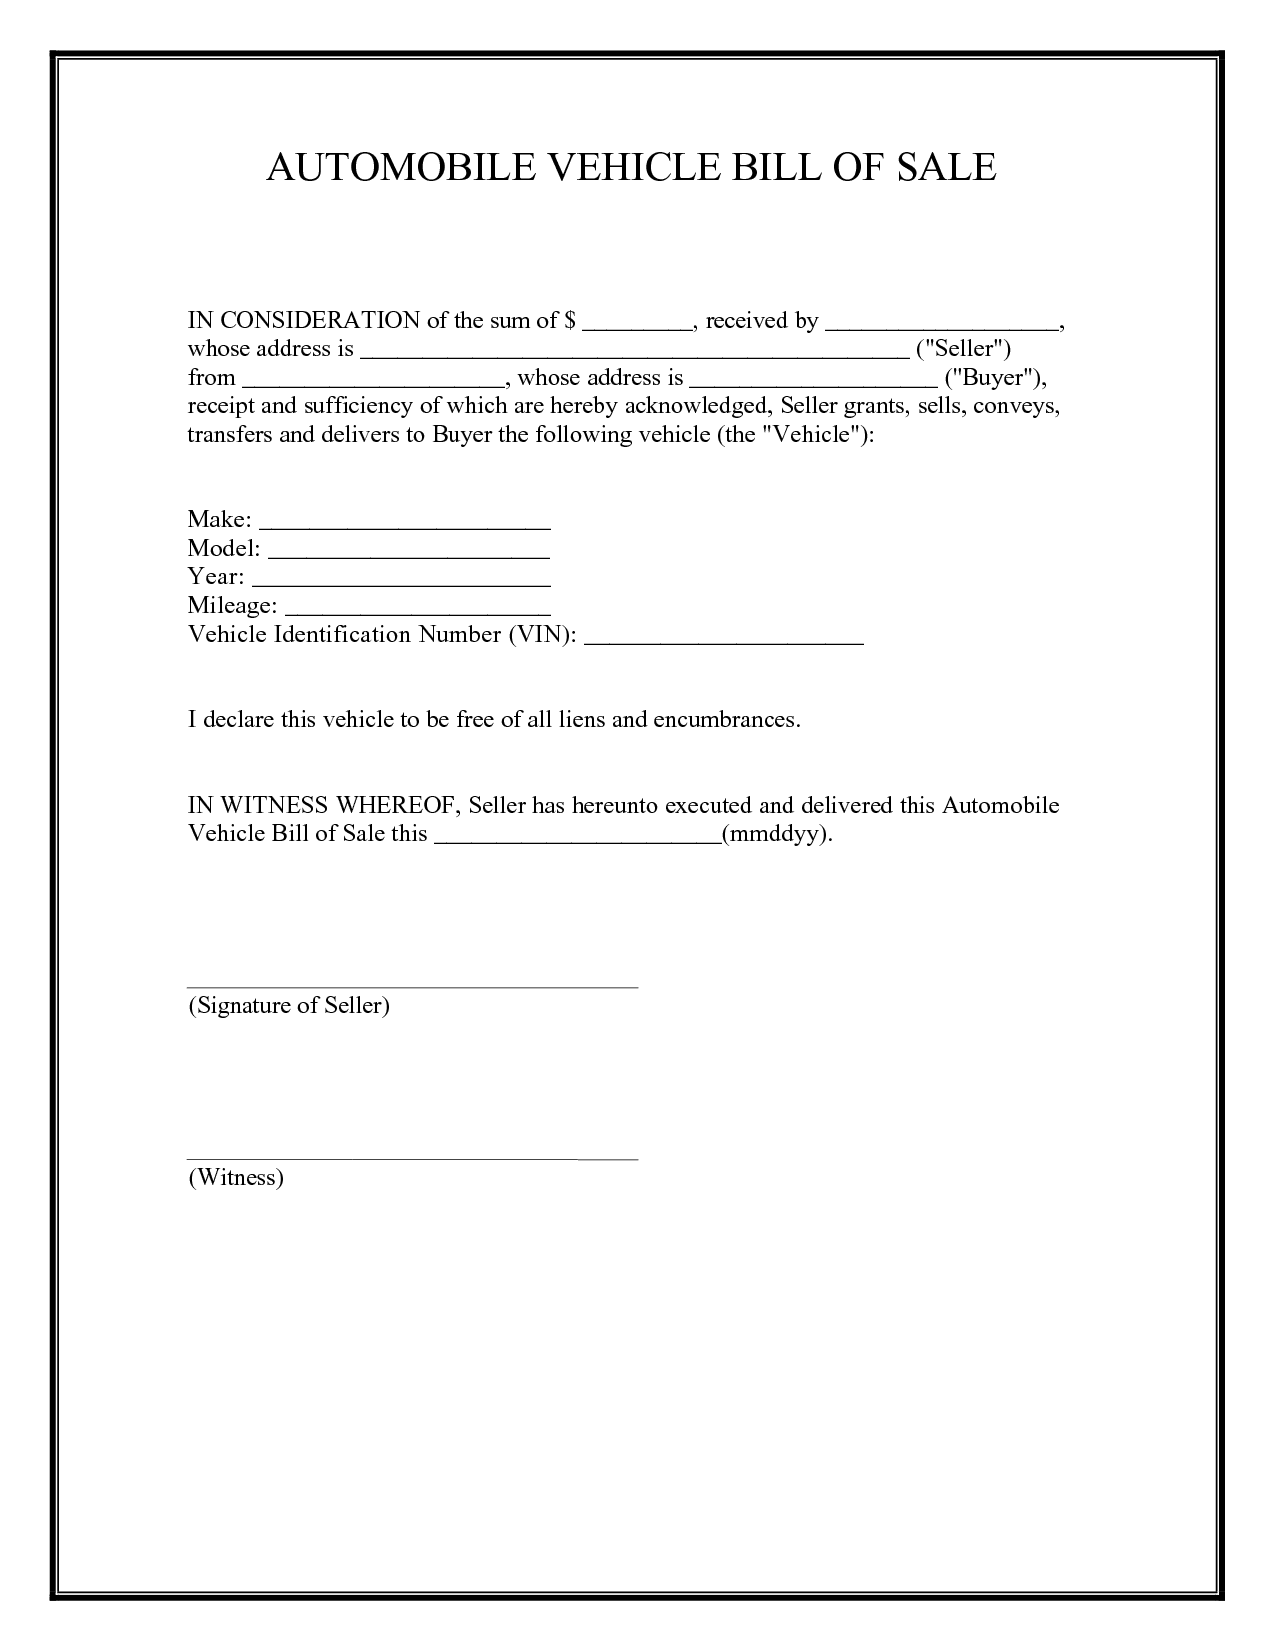 Free Bill Of Sale Form For Car In Georgia And Free Car Bill Of Sale Template Ontario